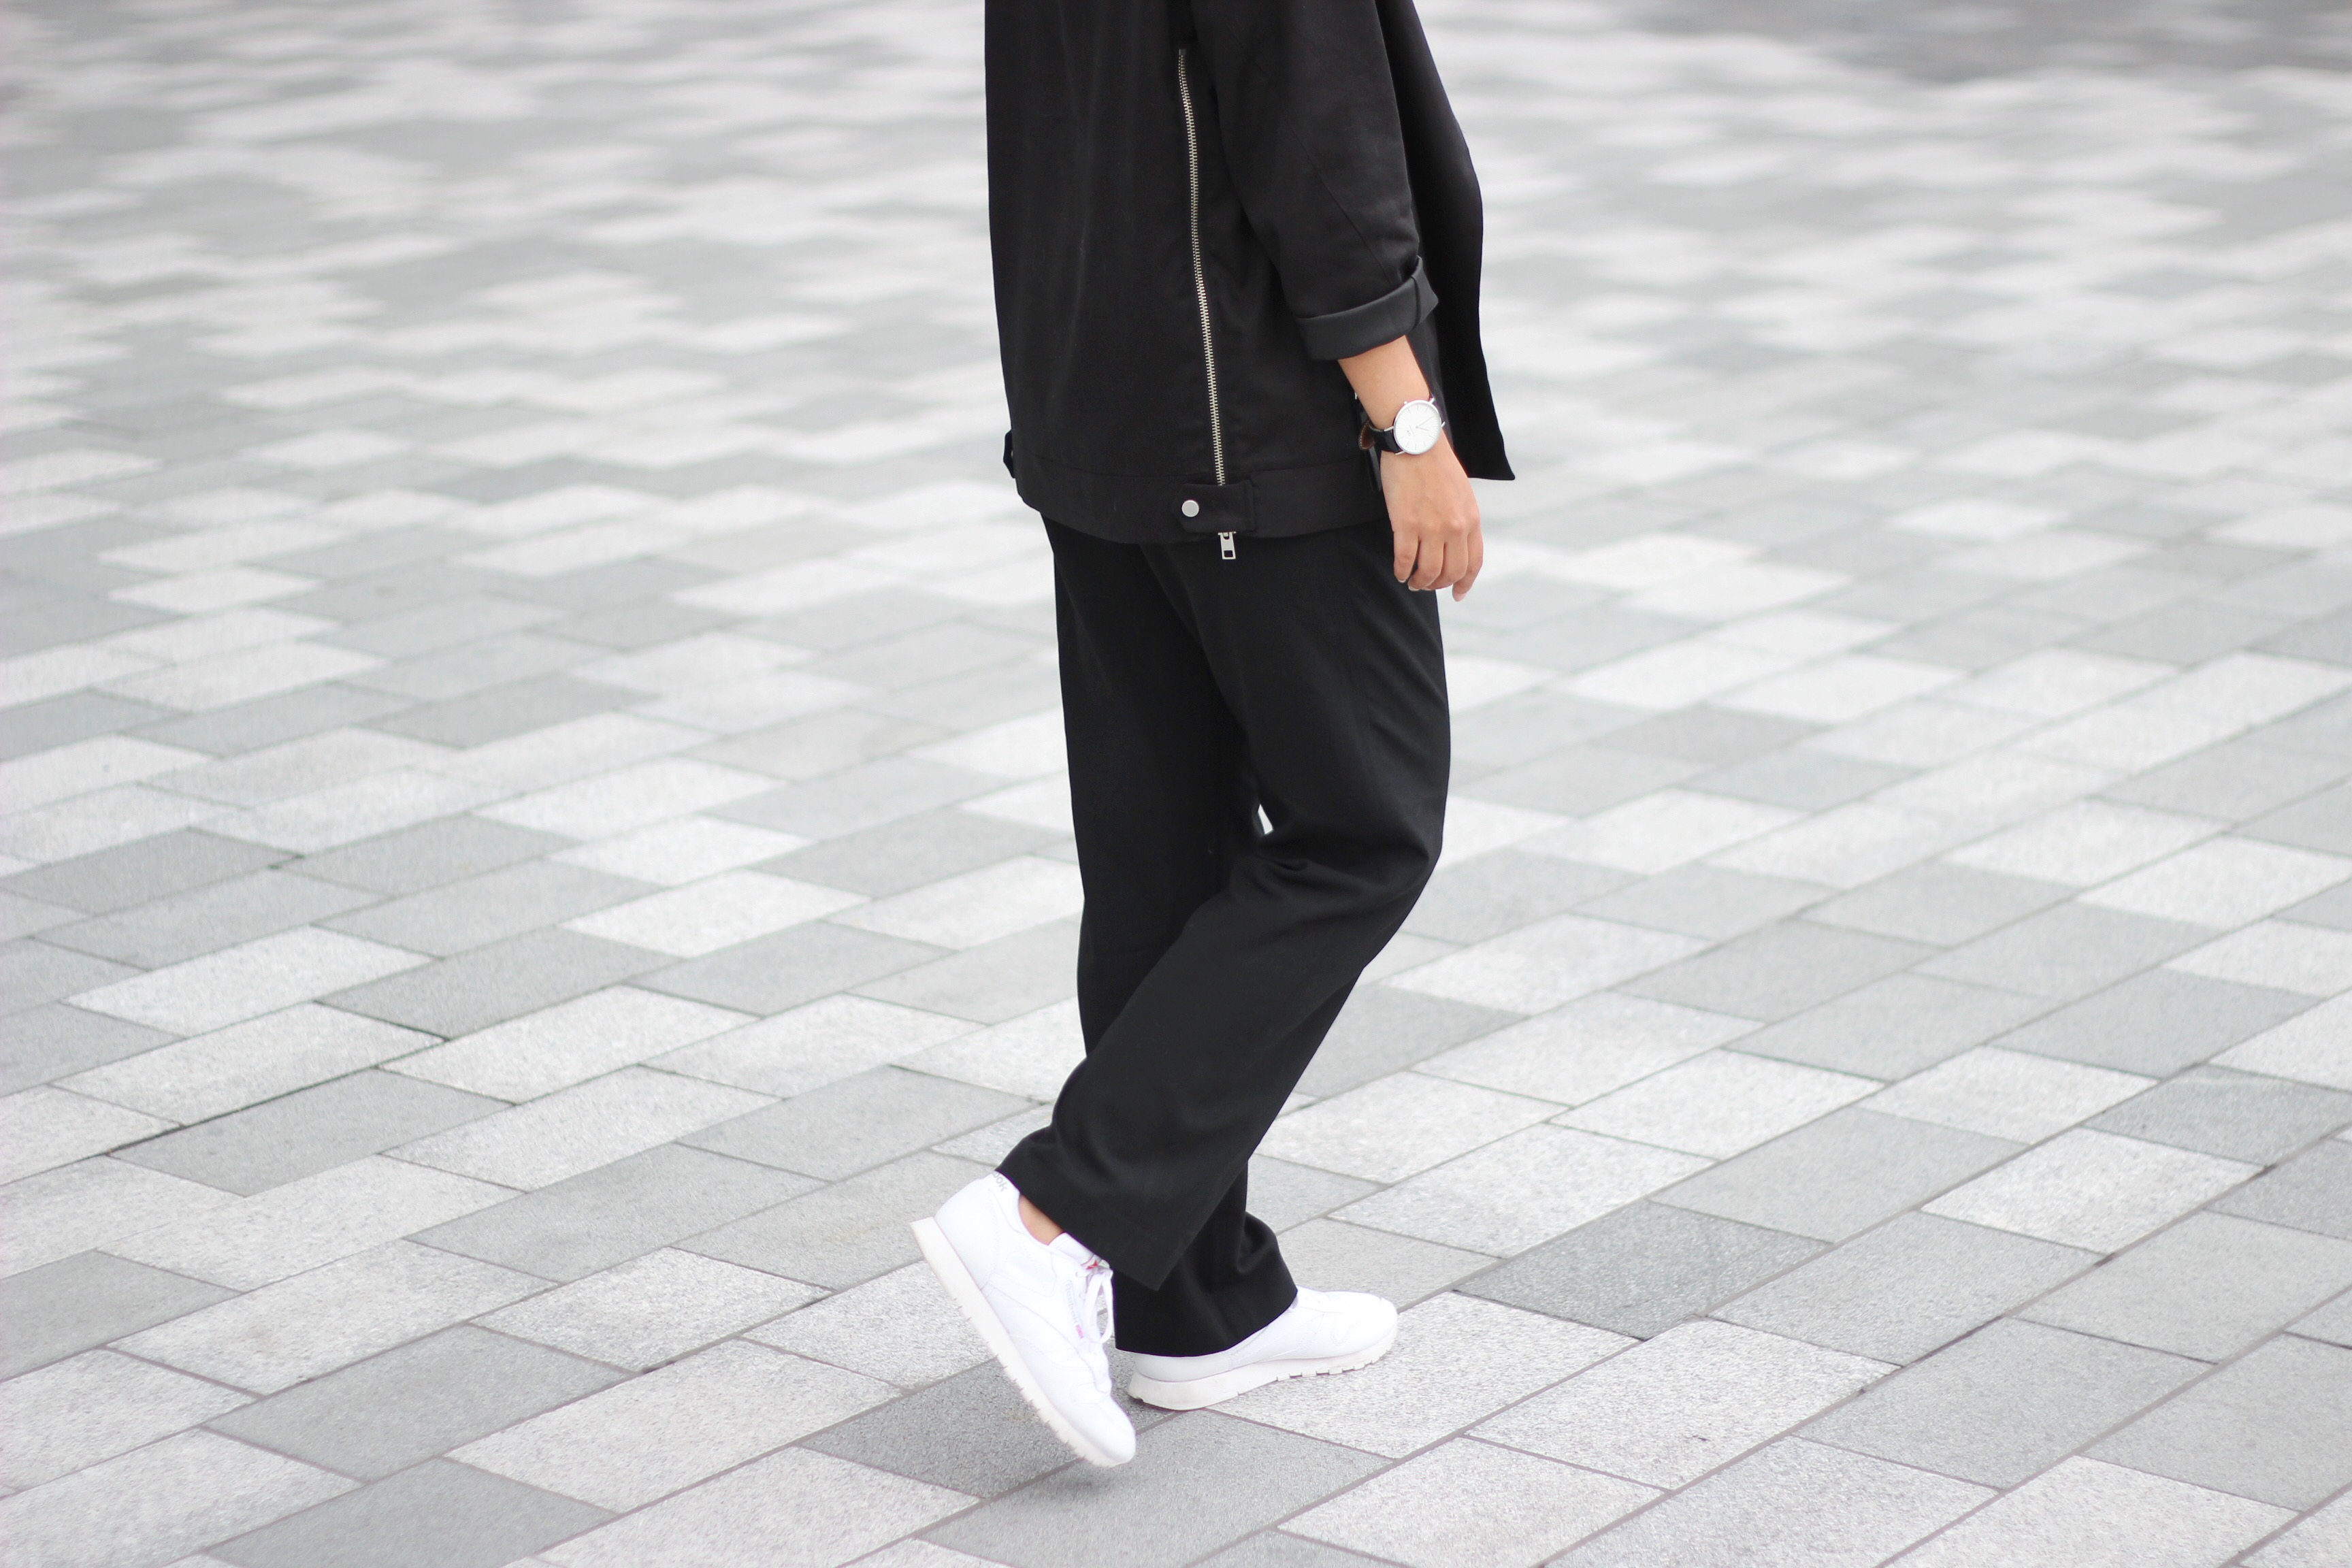 Simplicity-trousers-wide-fit-style-fashion-outfit